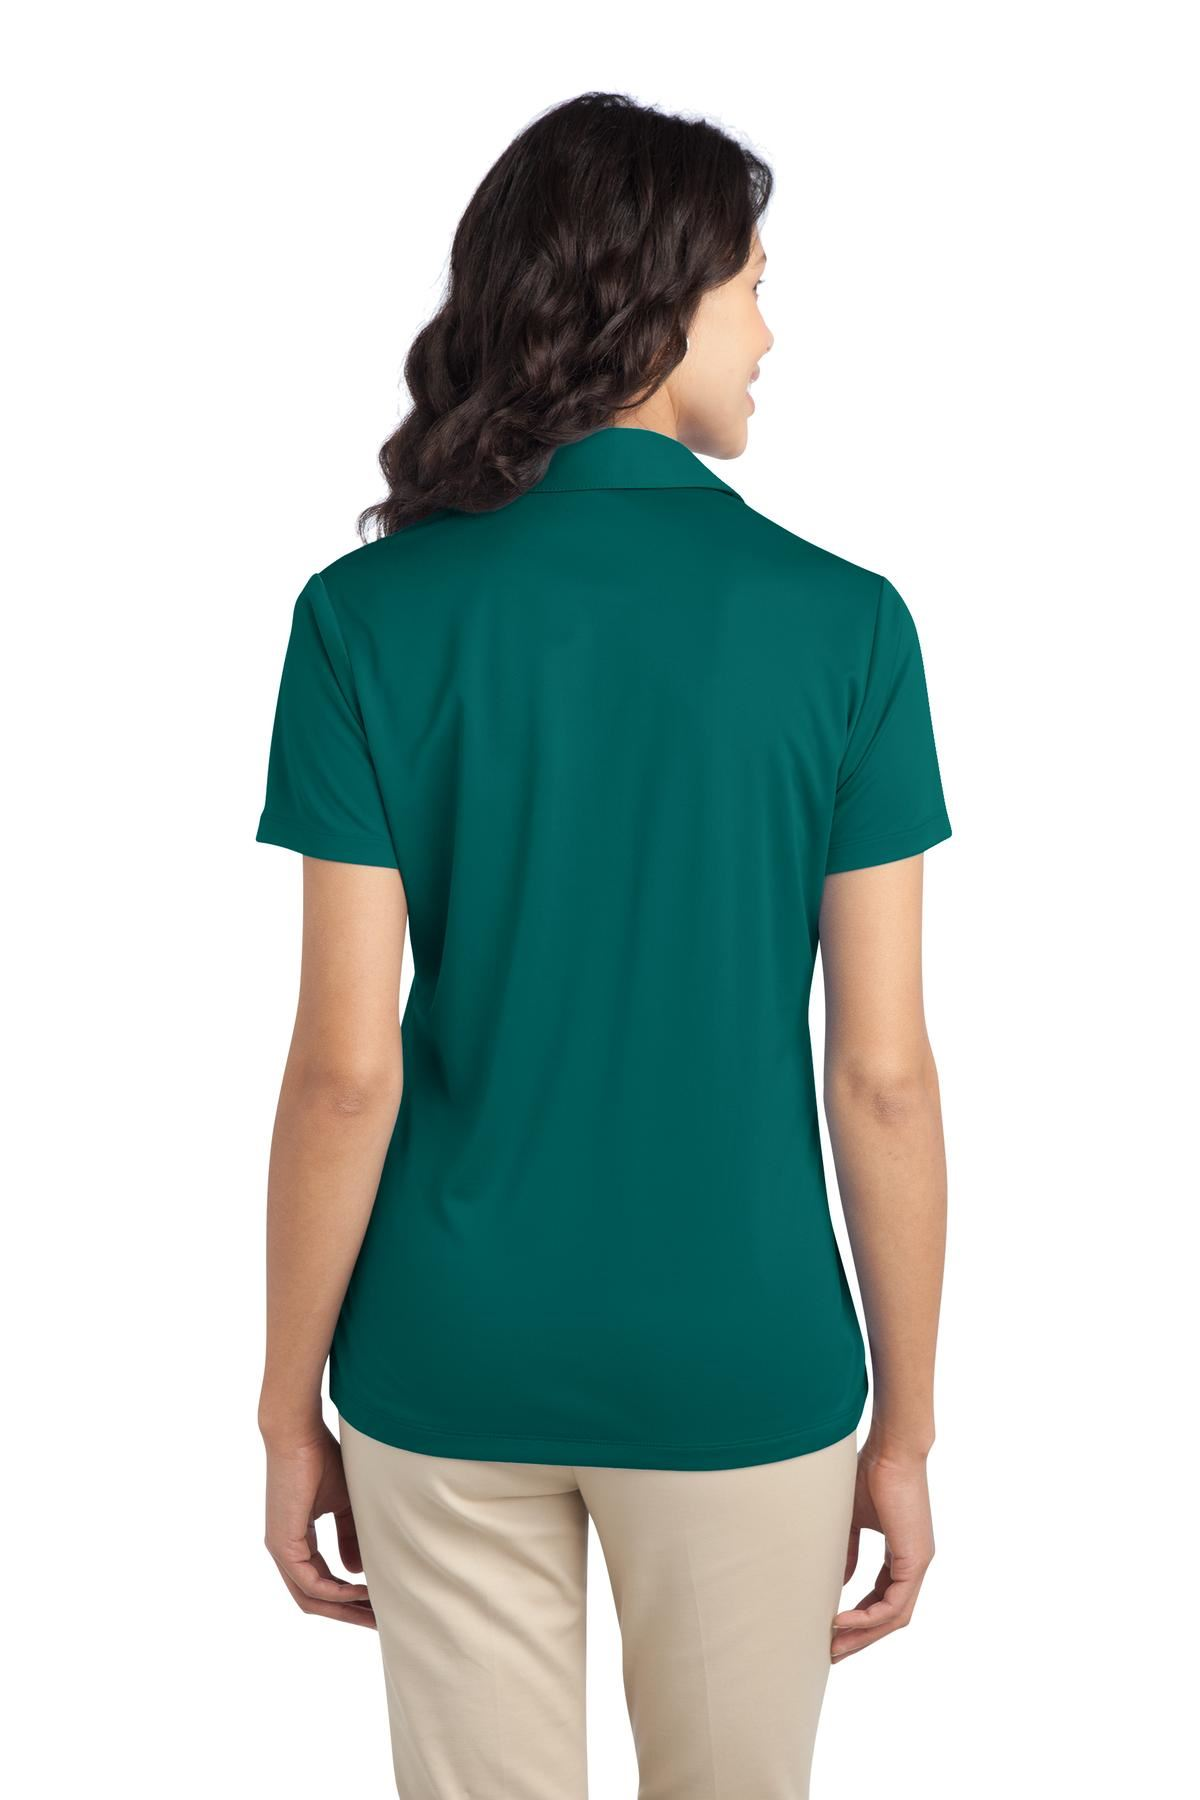 Port-Authority-Womens-Dri-Fit-SIlk-Touch-Performance-Polo-Golf-Shirt-M-L540 thumbnail 33